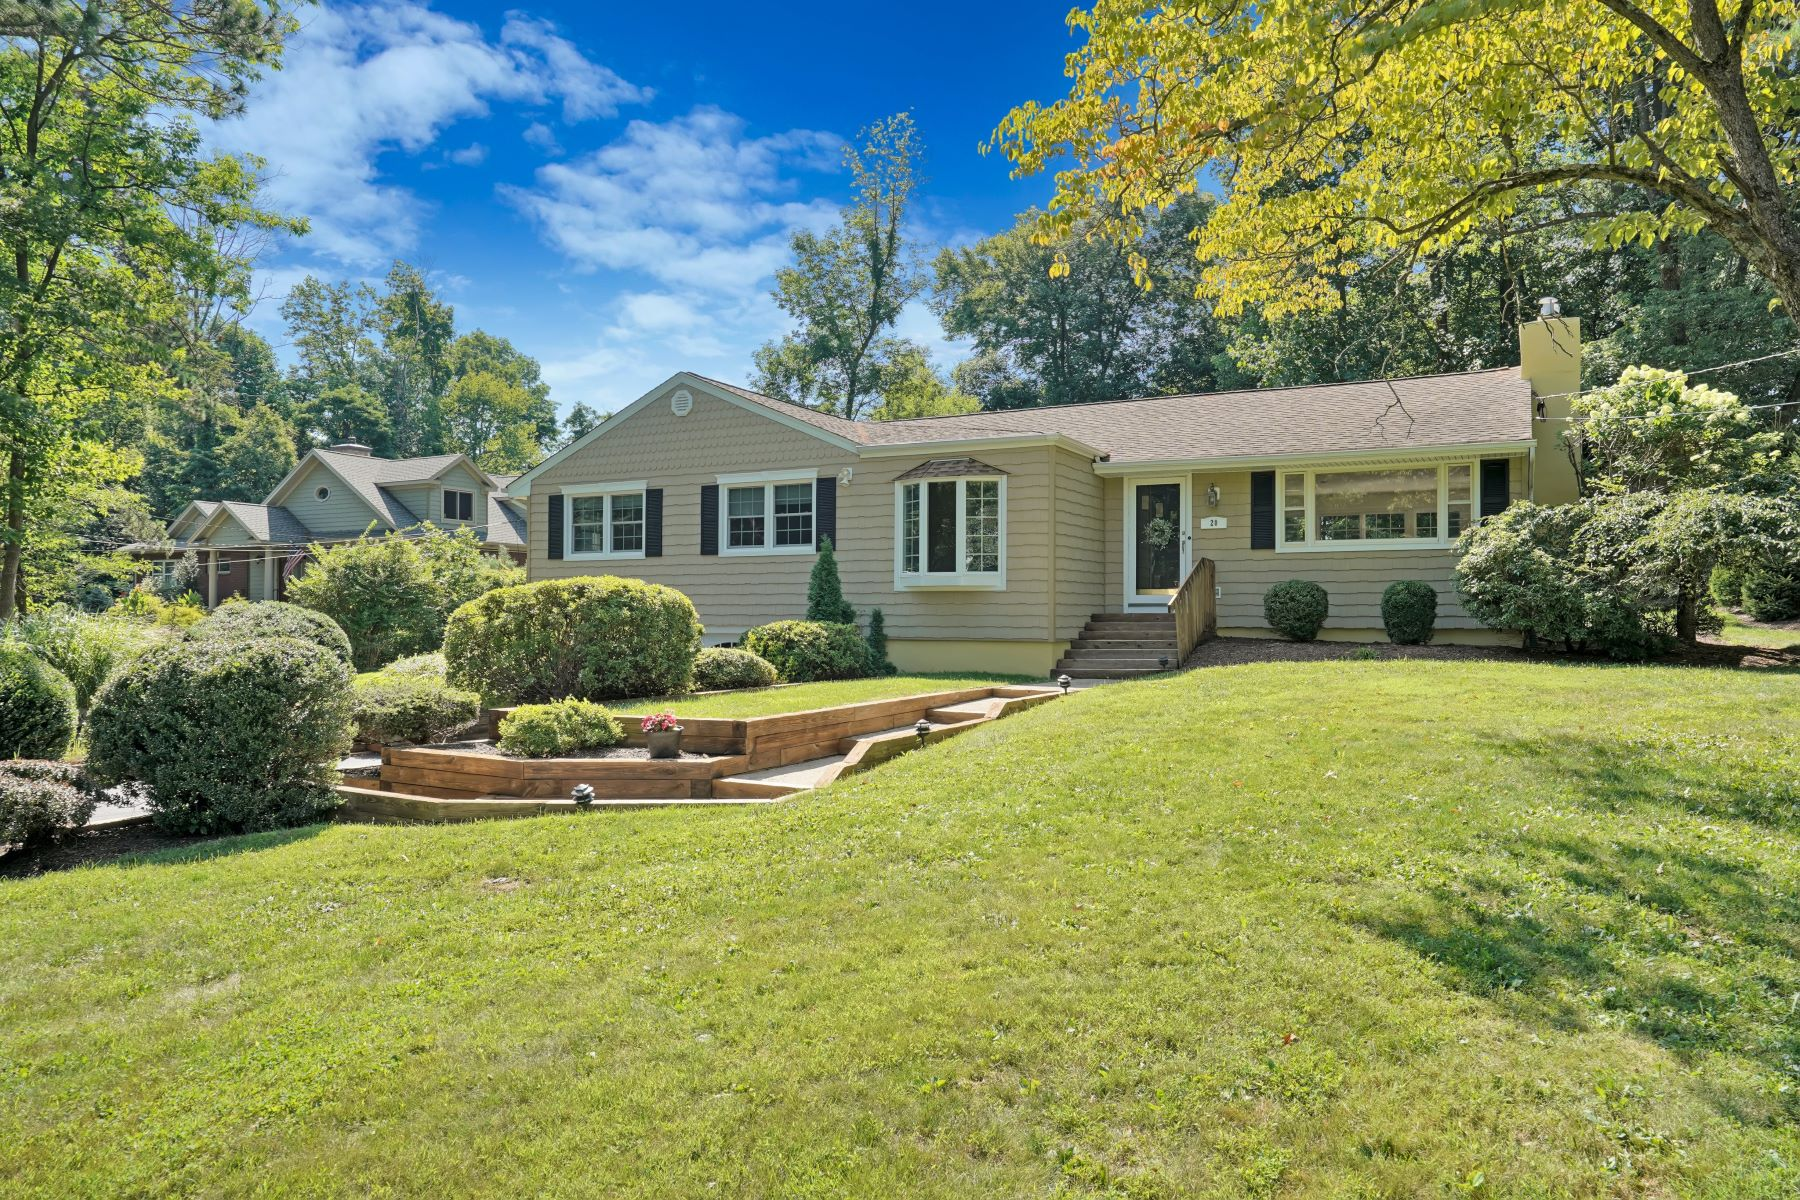 Single Family Homes for Active at Sun Drenched Beauty 20 Starlight Drive Morris Township, New Jersey 07960 United States